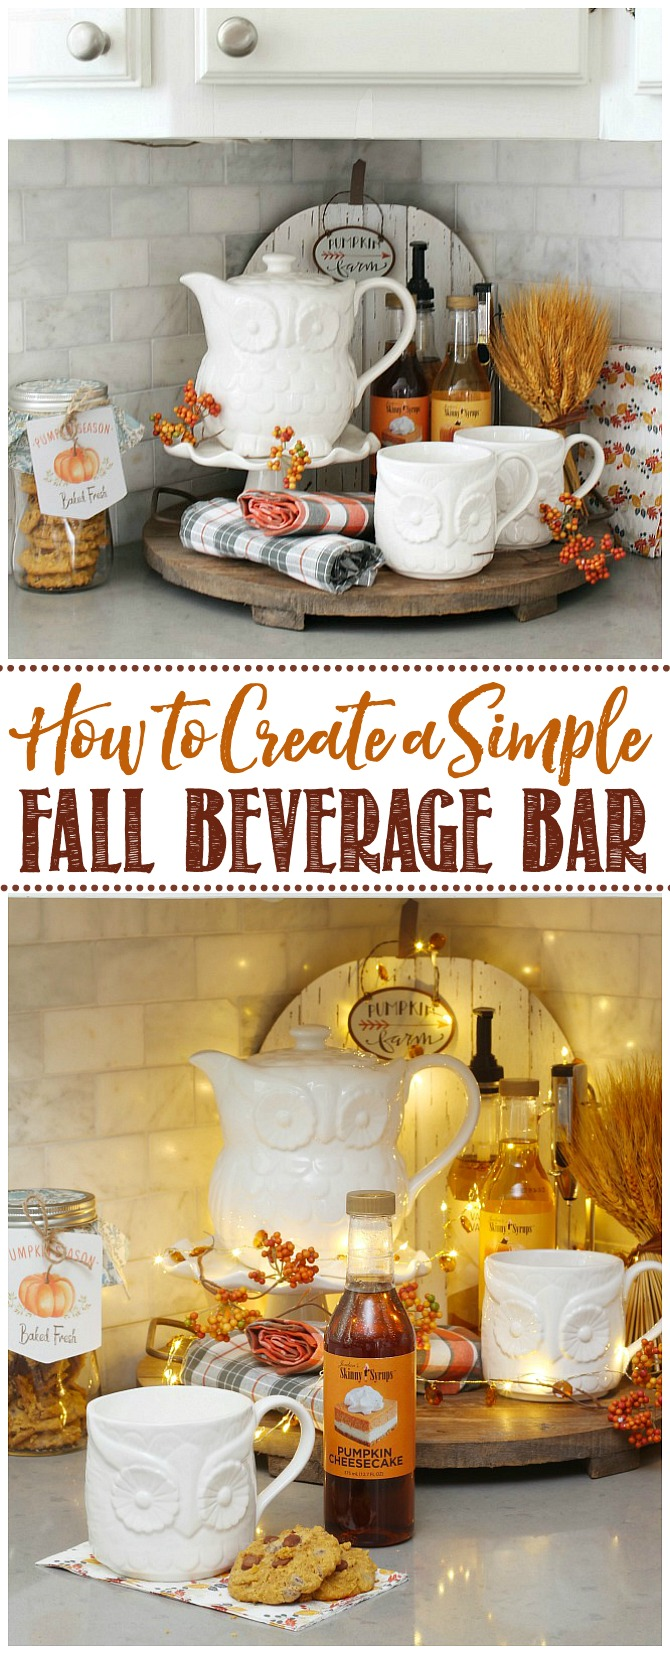 Cute fall beverage bar with owl tea set and fall flavored syrups.